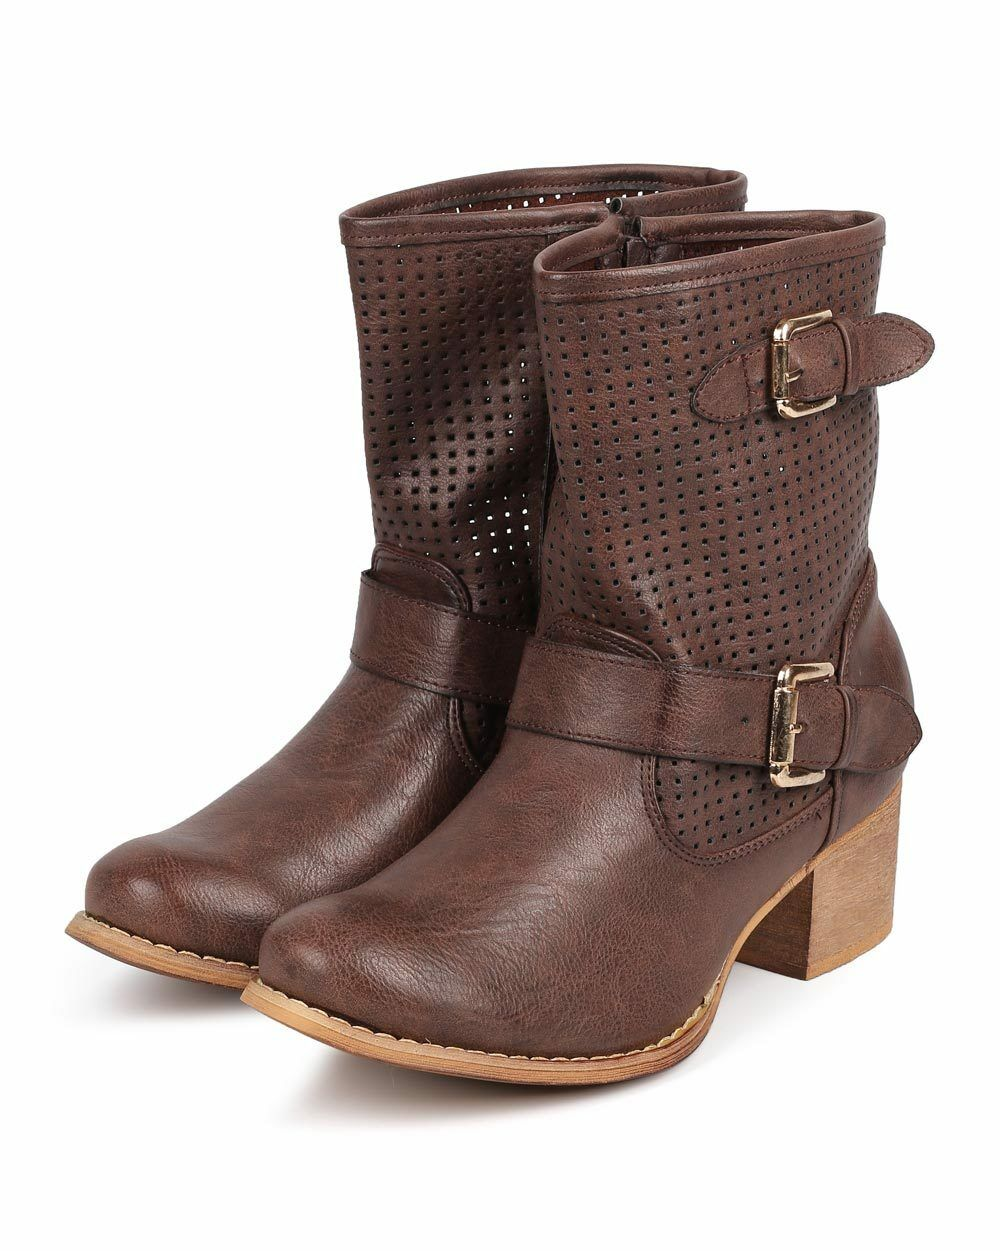 New Women Liliana Norman-3 Hollow Leatherette Round Toe Buckle Strap Riding Boot